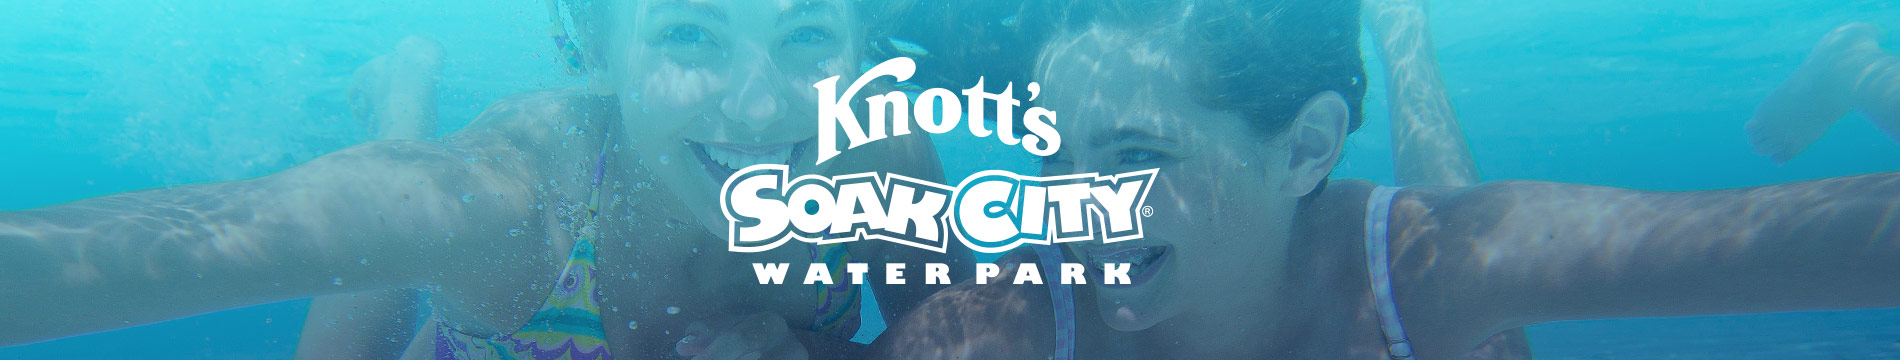 Knott's Soak City Waterpark Daily Tickets